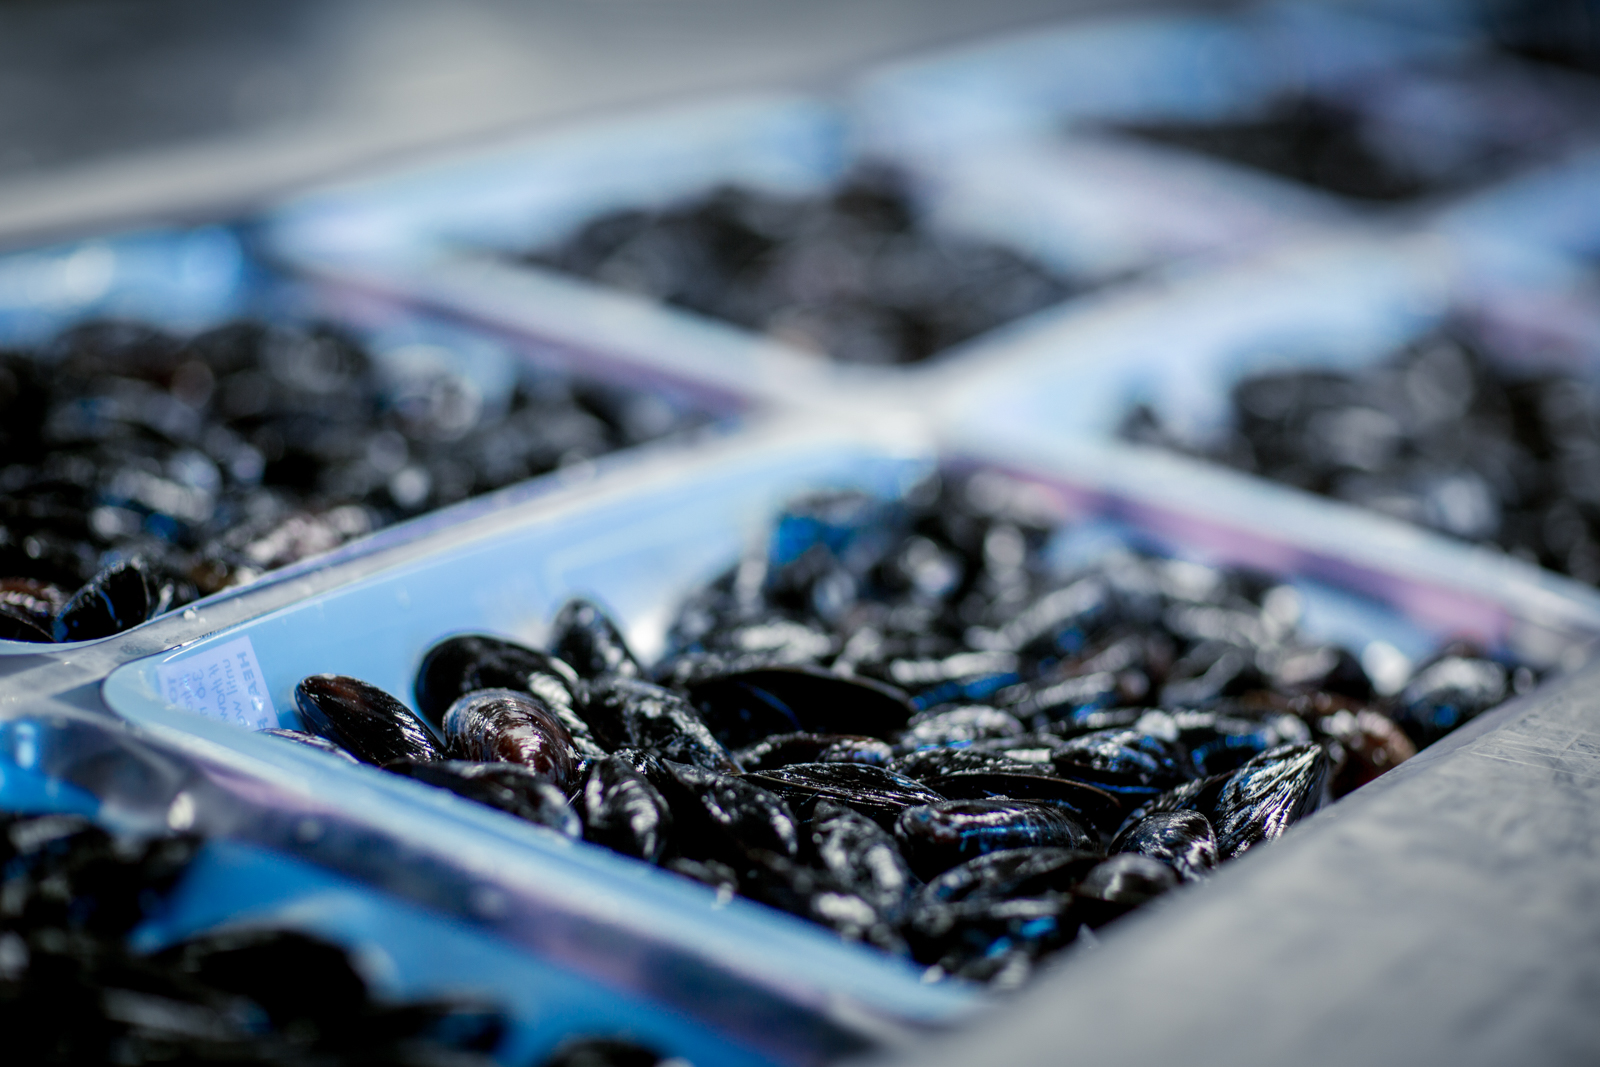 PEI Mussel King mussels product package